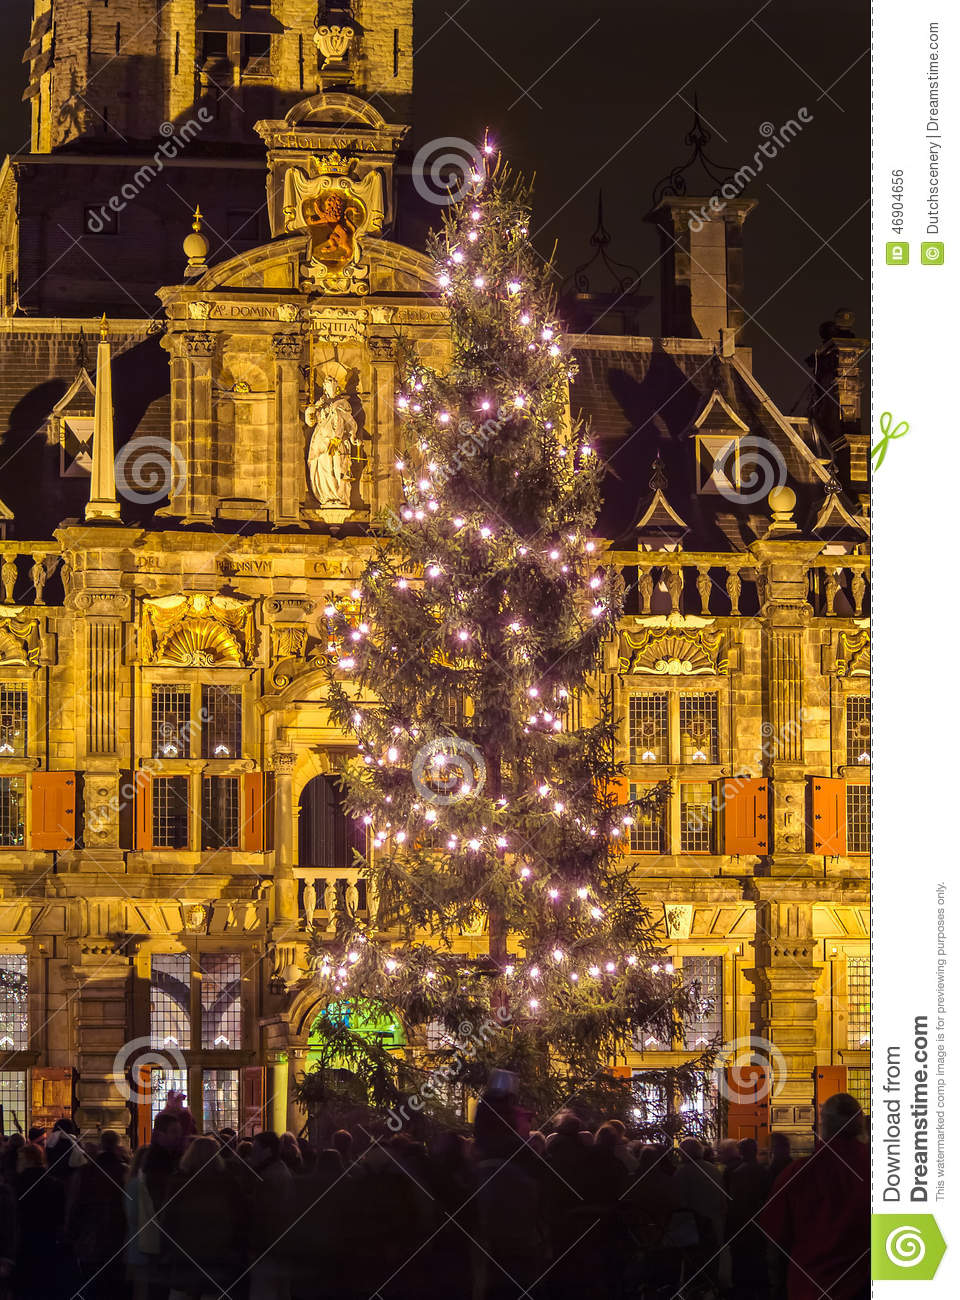 Christmas Tree In Delft The Netherlands Stock Photo